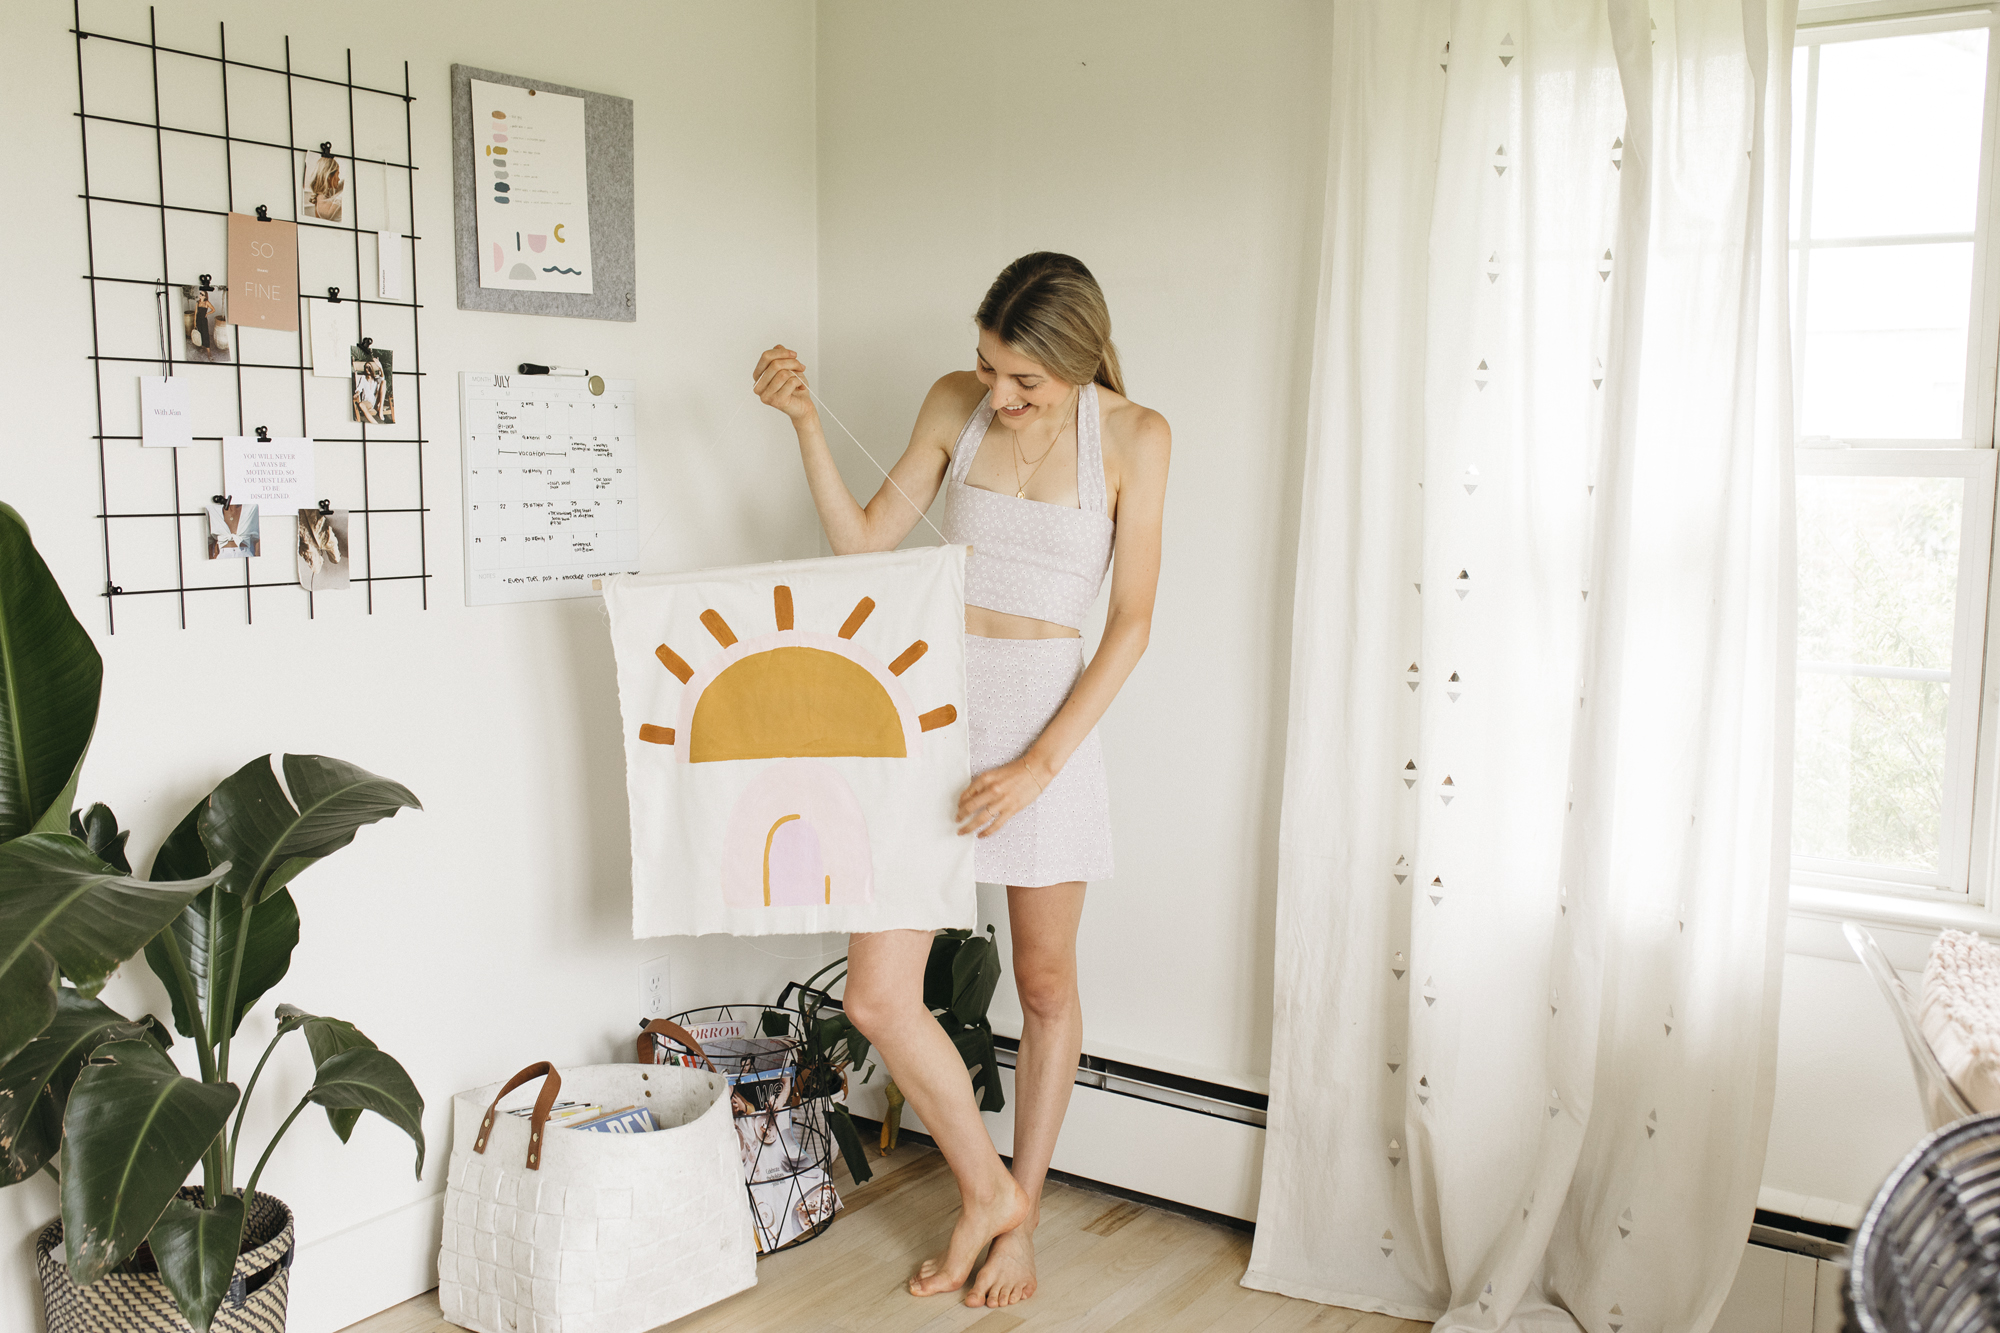 What is perfection? What holds you back. Growing up as a creative kid in a conservative community, I struggled to find the purpose as an artist. Creative Blogger Emily R Hess and founder of Luca Creative Co explains her art and lifestyle.